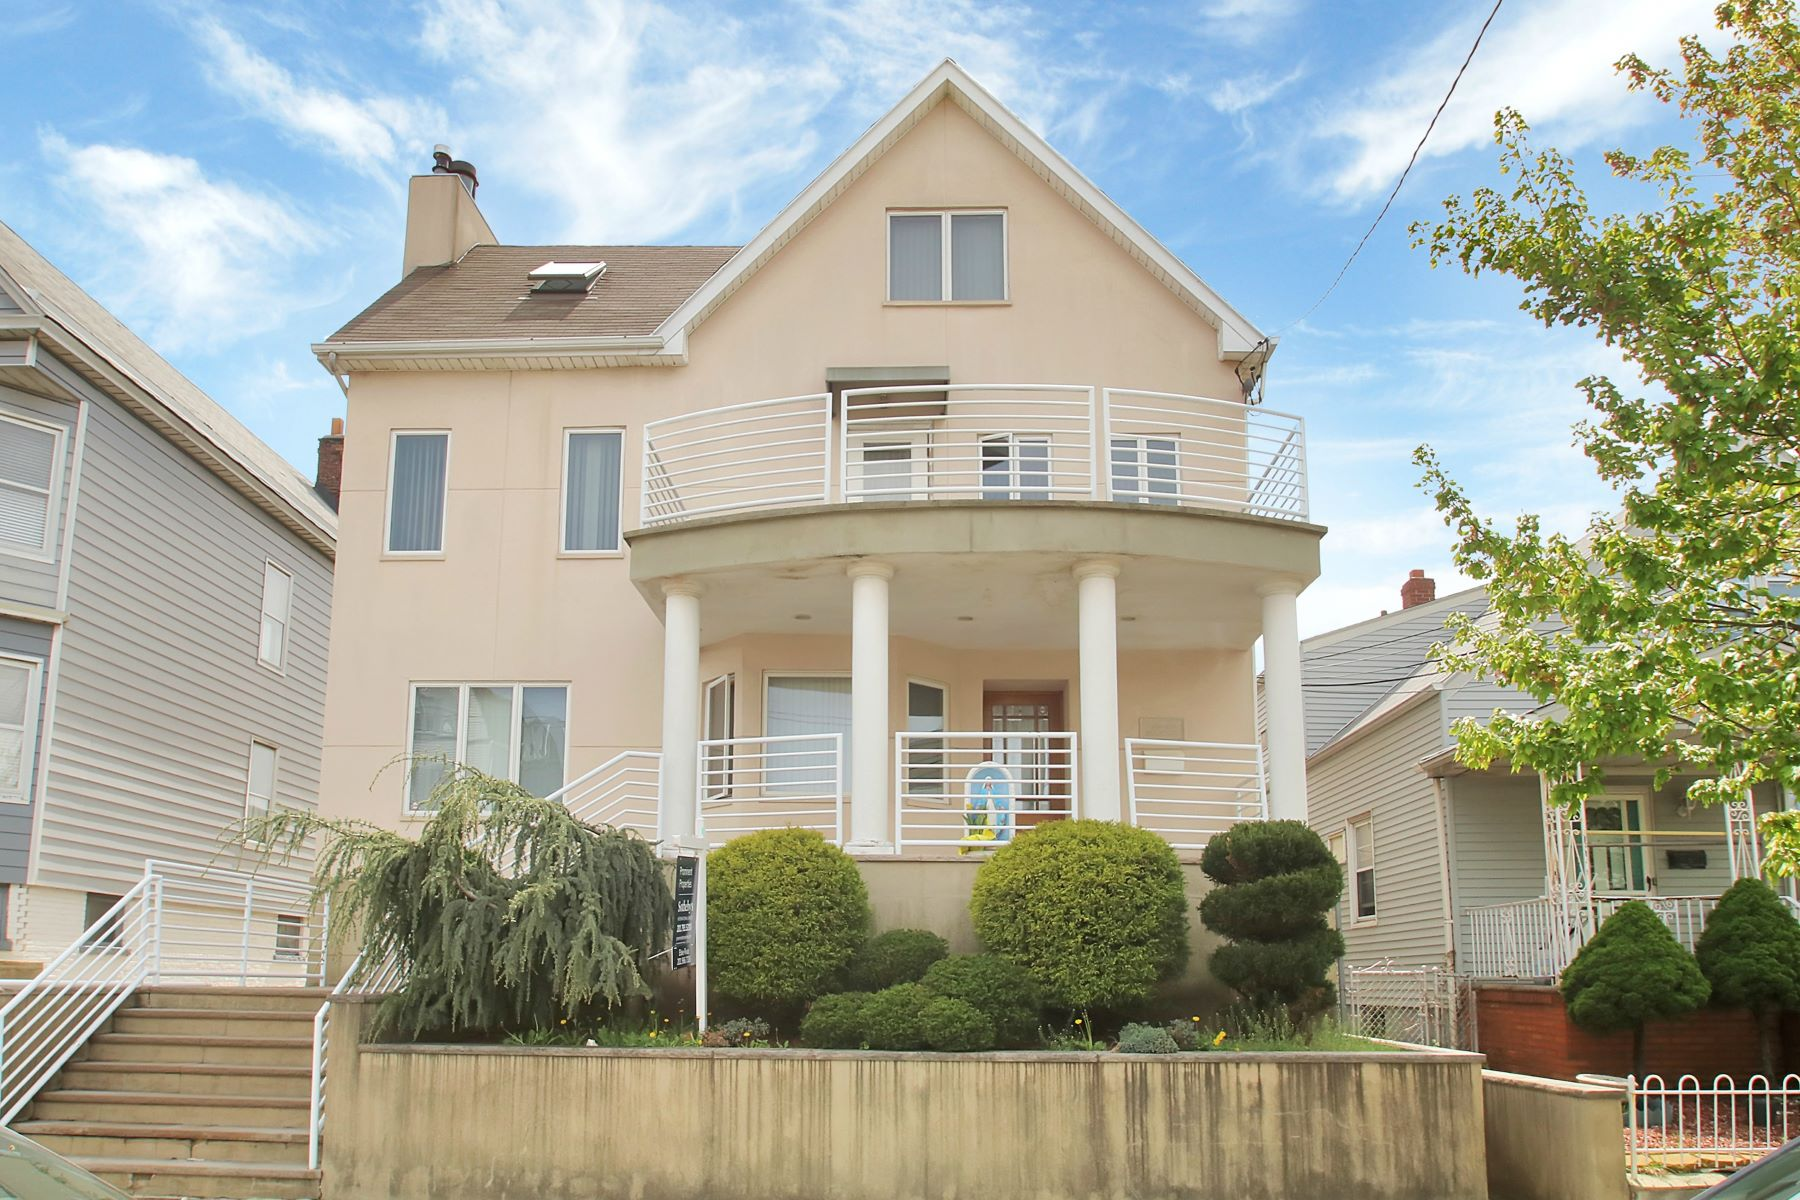 Vivienda multifamiliar por un Venta en Exceptional one of a kind colonial Home 140 West 25th Street Bayonne, Nueva Jersey 07002 Estados Unidos